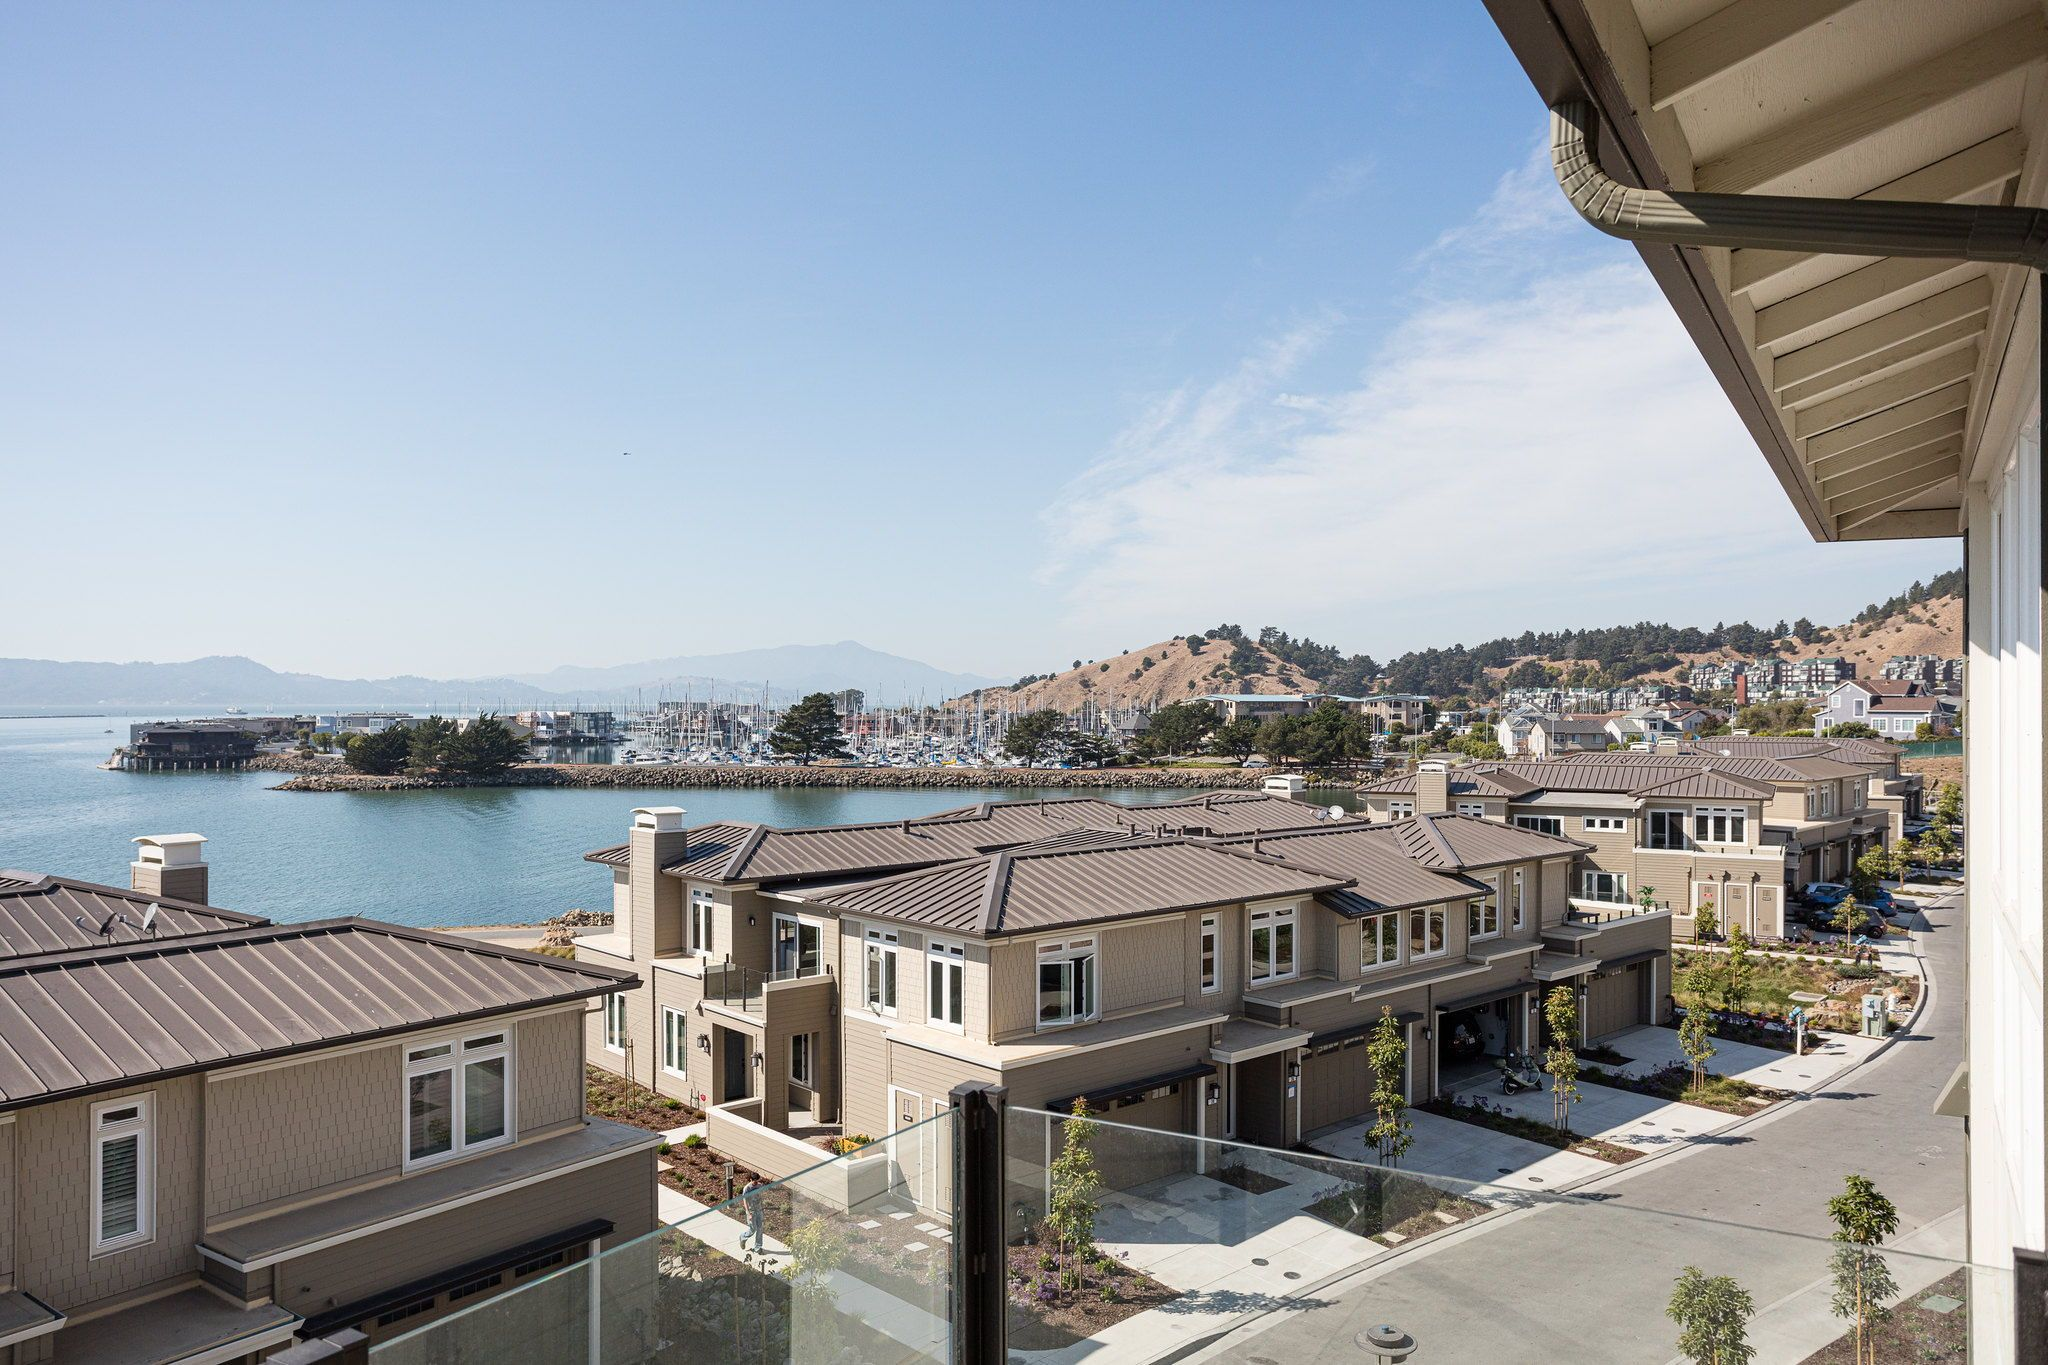 Waterline in Point Richmond, CA by Shea Homes | Residence 4 Deck Views #SheaHomes #SheaHomesNorCal #SheaHomeowners #SheaNorCal #LiveTheSheaDifference #NorCalHomes #NorCalRealEstate #BayAreaRealEstate #BayAreaNewHomes #HomeDesignInspiration #HomeInspiration #Waterline #PointRichmond Sales: Shea Homes Marketing Company (CalDRE #01378646); Construction: Shea Homes Limited Partnership (CSLB #855368). Equal Housing Opportunity.